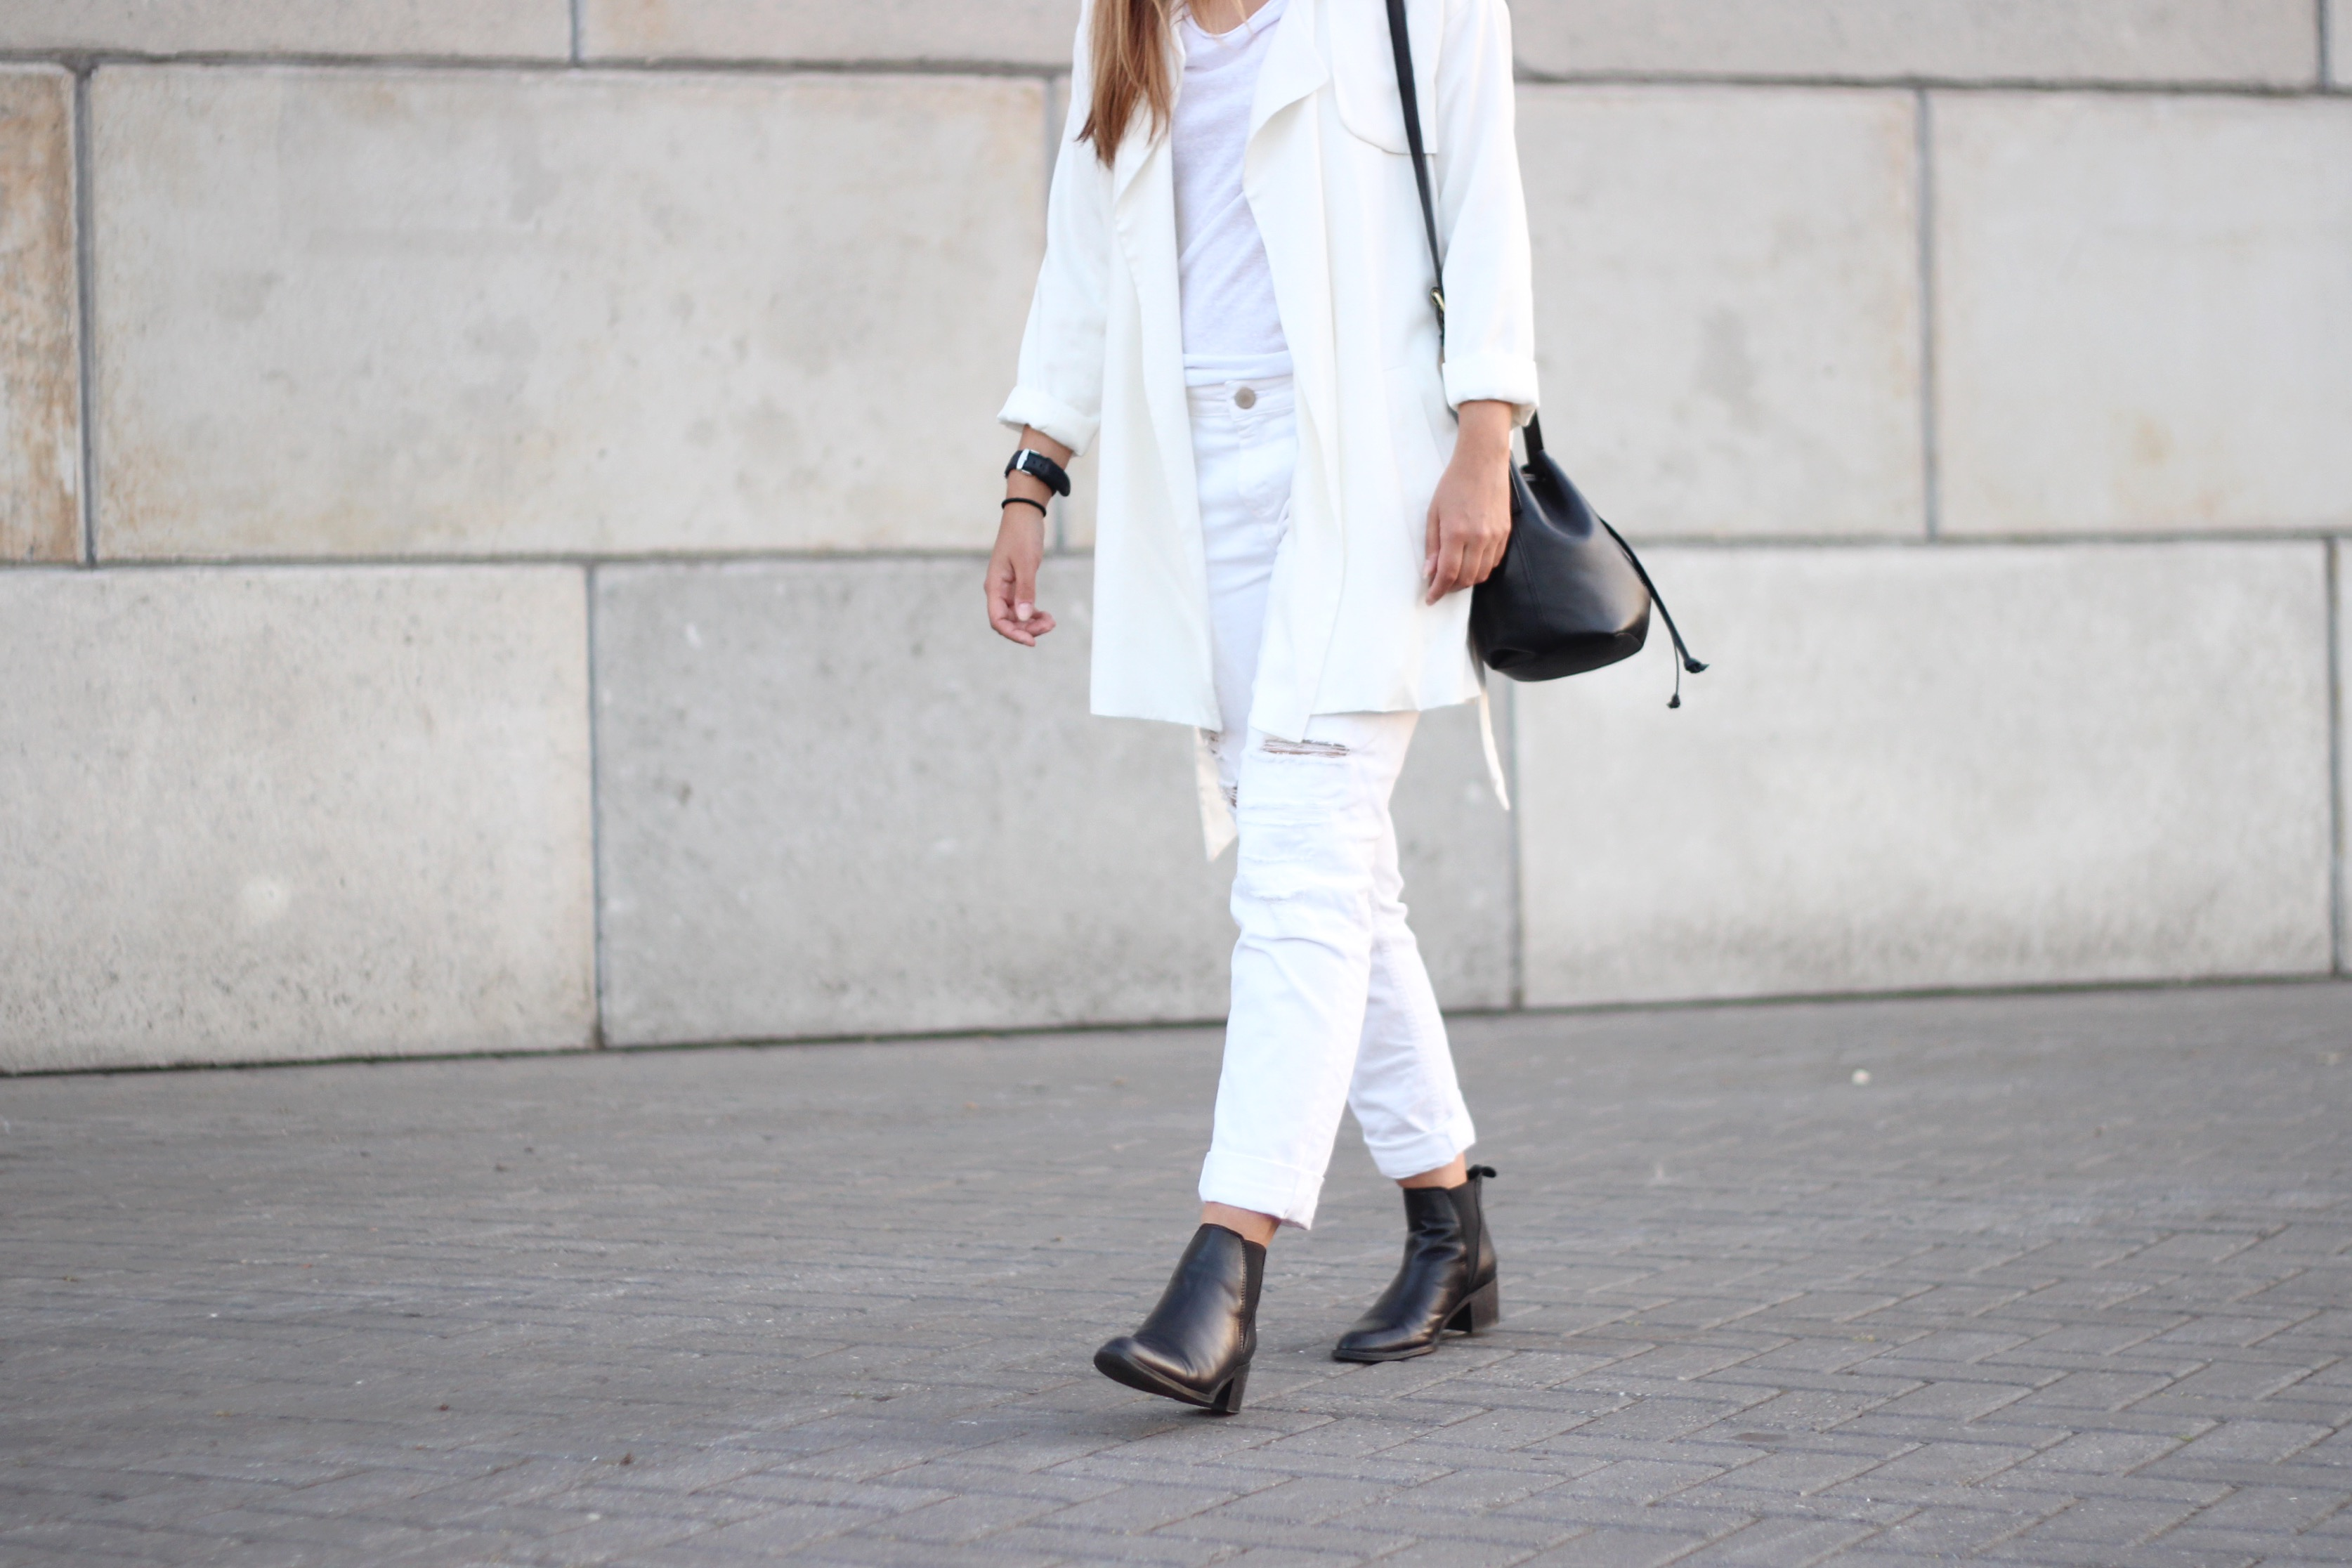 ankle-boots-zign-white-jeans-ripped-distressed-damaged